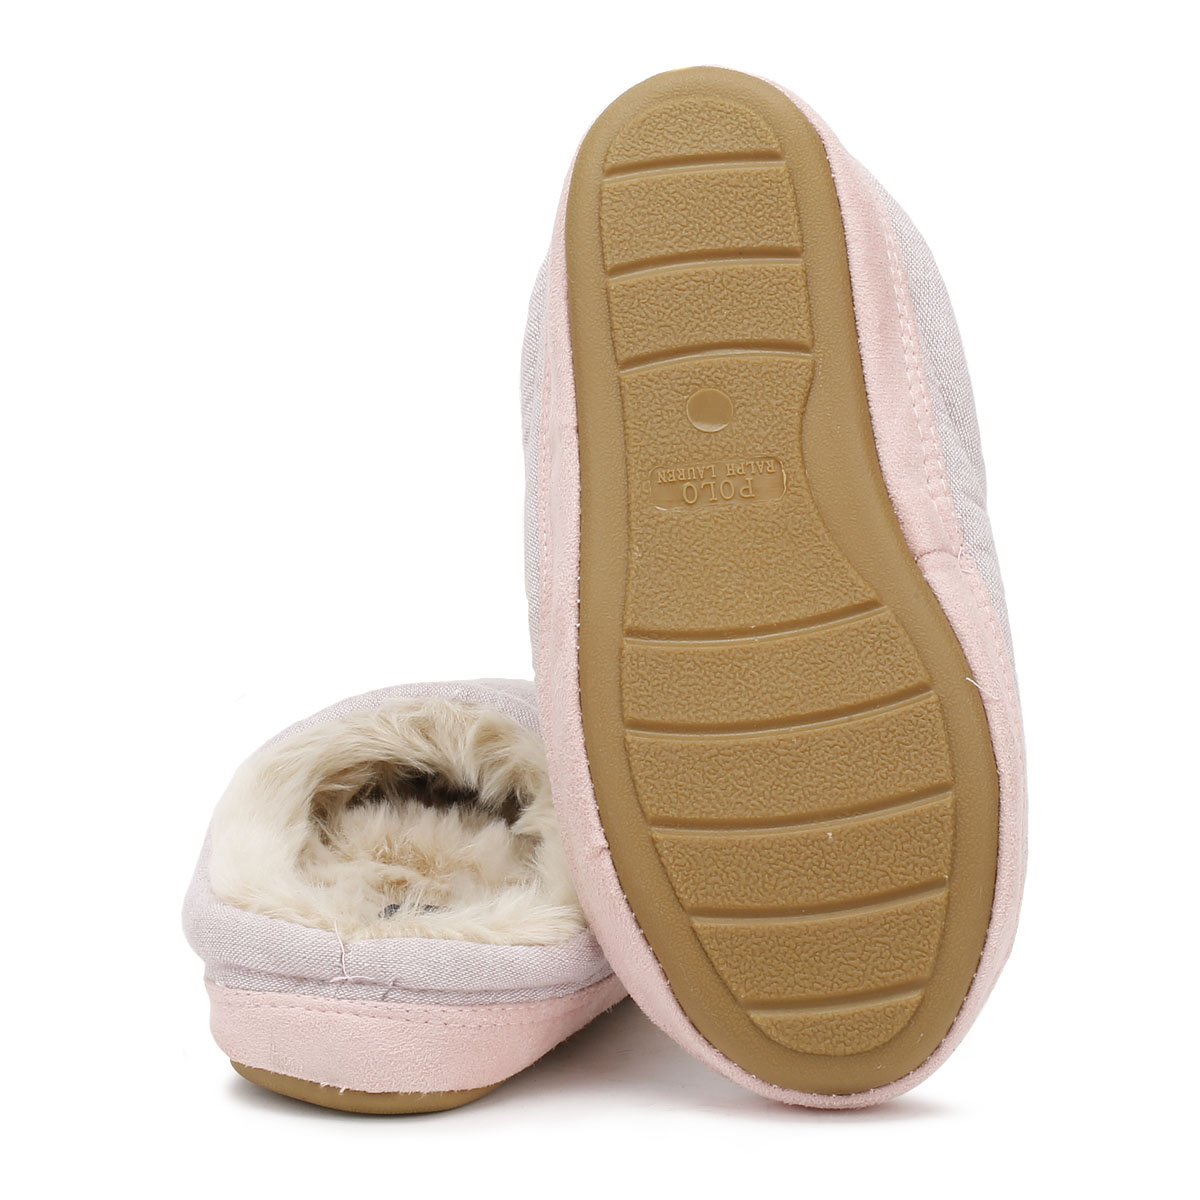 8b9a6ee7f58 Ralph Lauren Womens Slippers Pink Polar Cream Jacque Mules Ladies Home Shoes